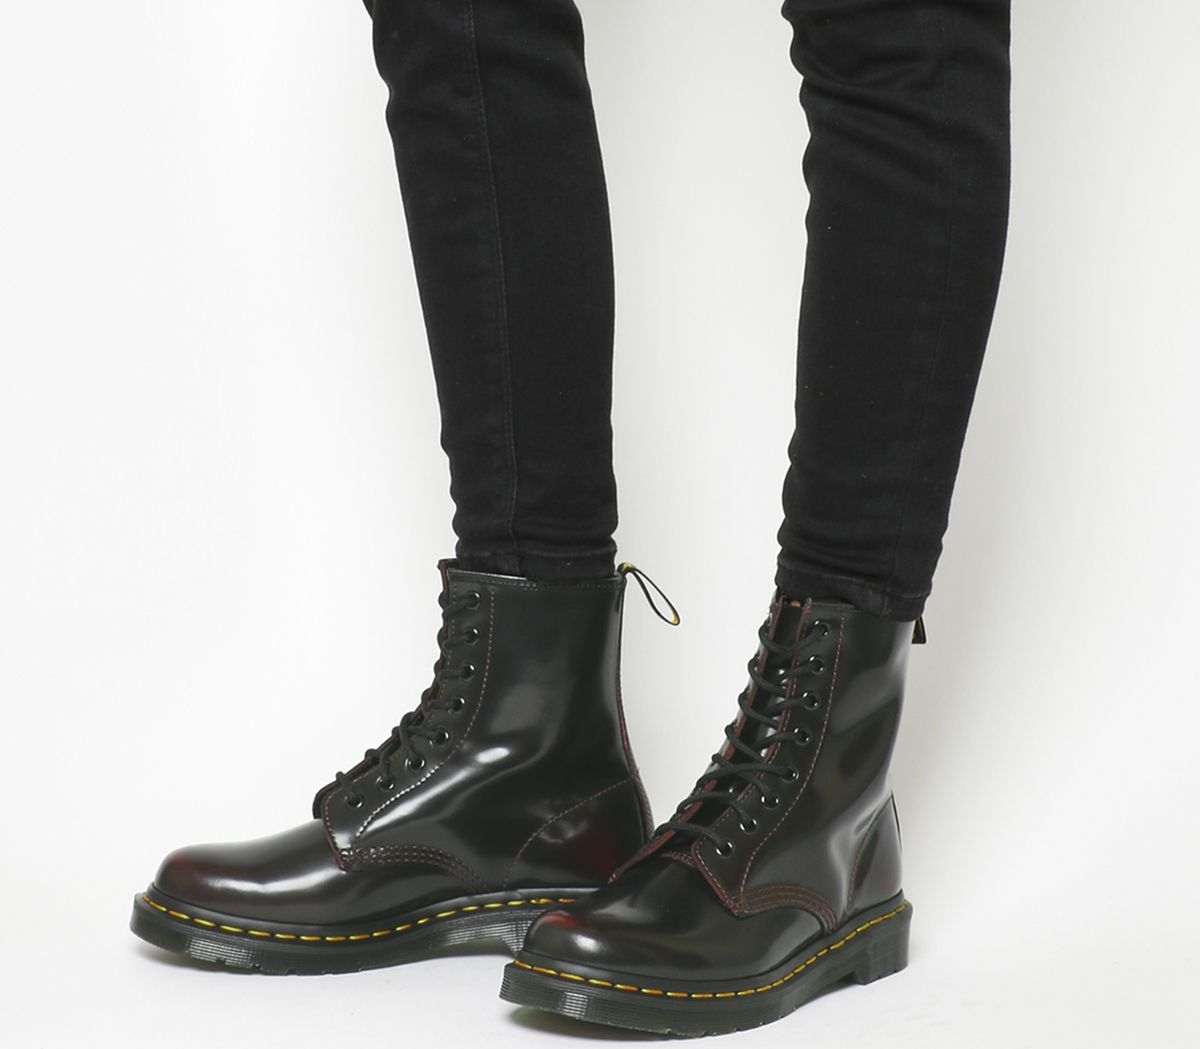 86d56c9179e5 Dr. Martens 8 Eyelet Lace Up Boots Cherry Red Arcadia - Ankle Boots